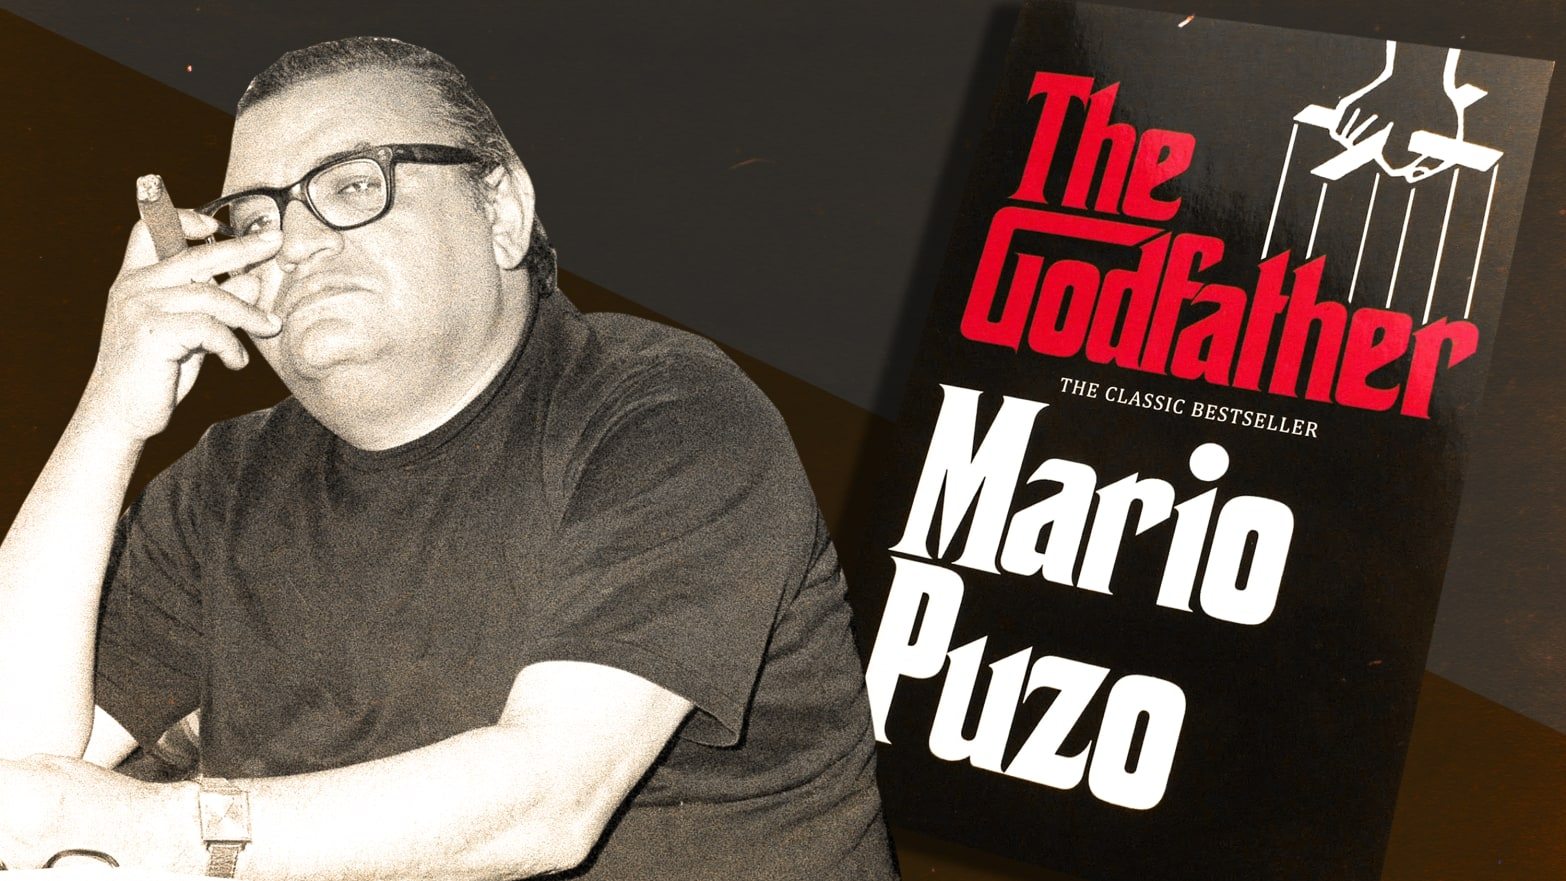 The 'Godfather' at 50: Mario Puzo's Novel Is Still Making Us an Offer We Can't Refuse